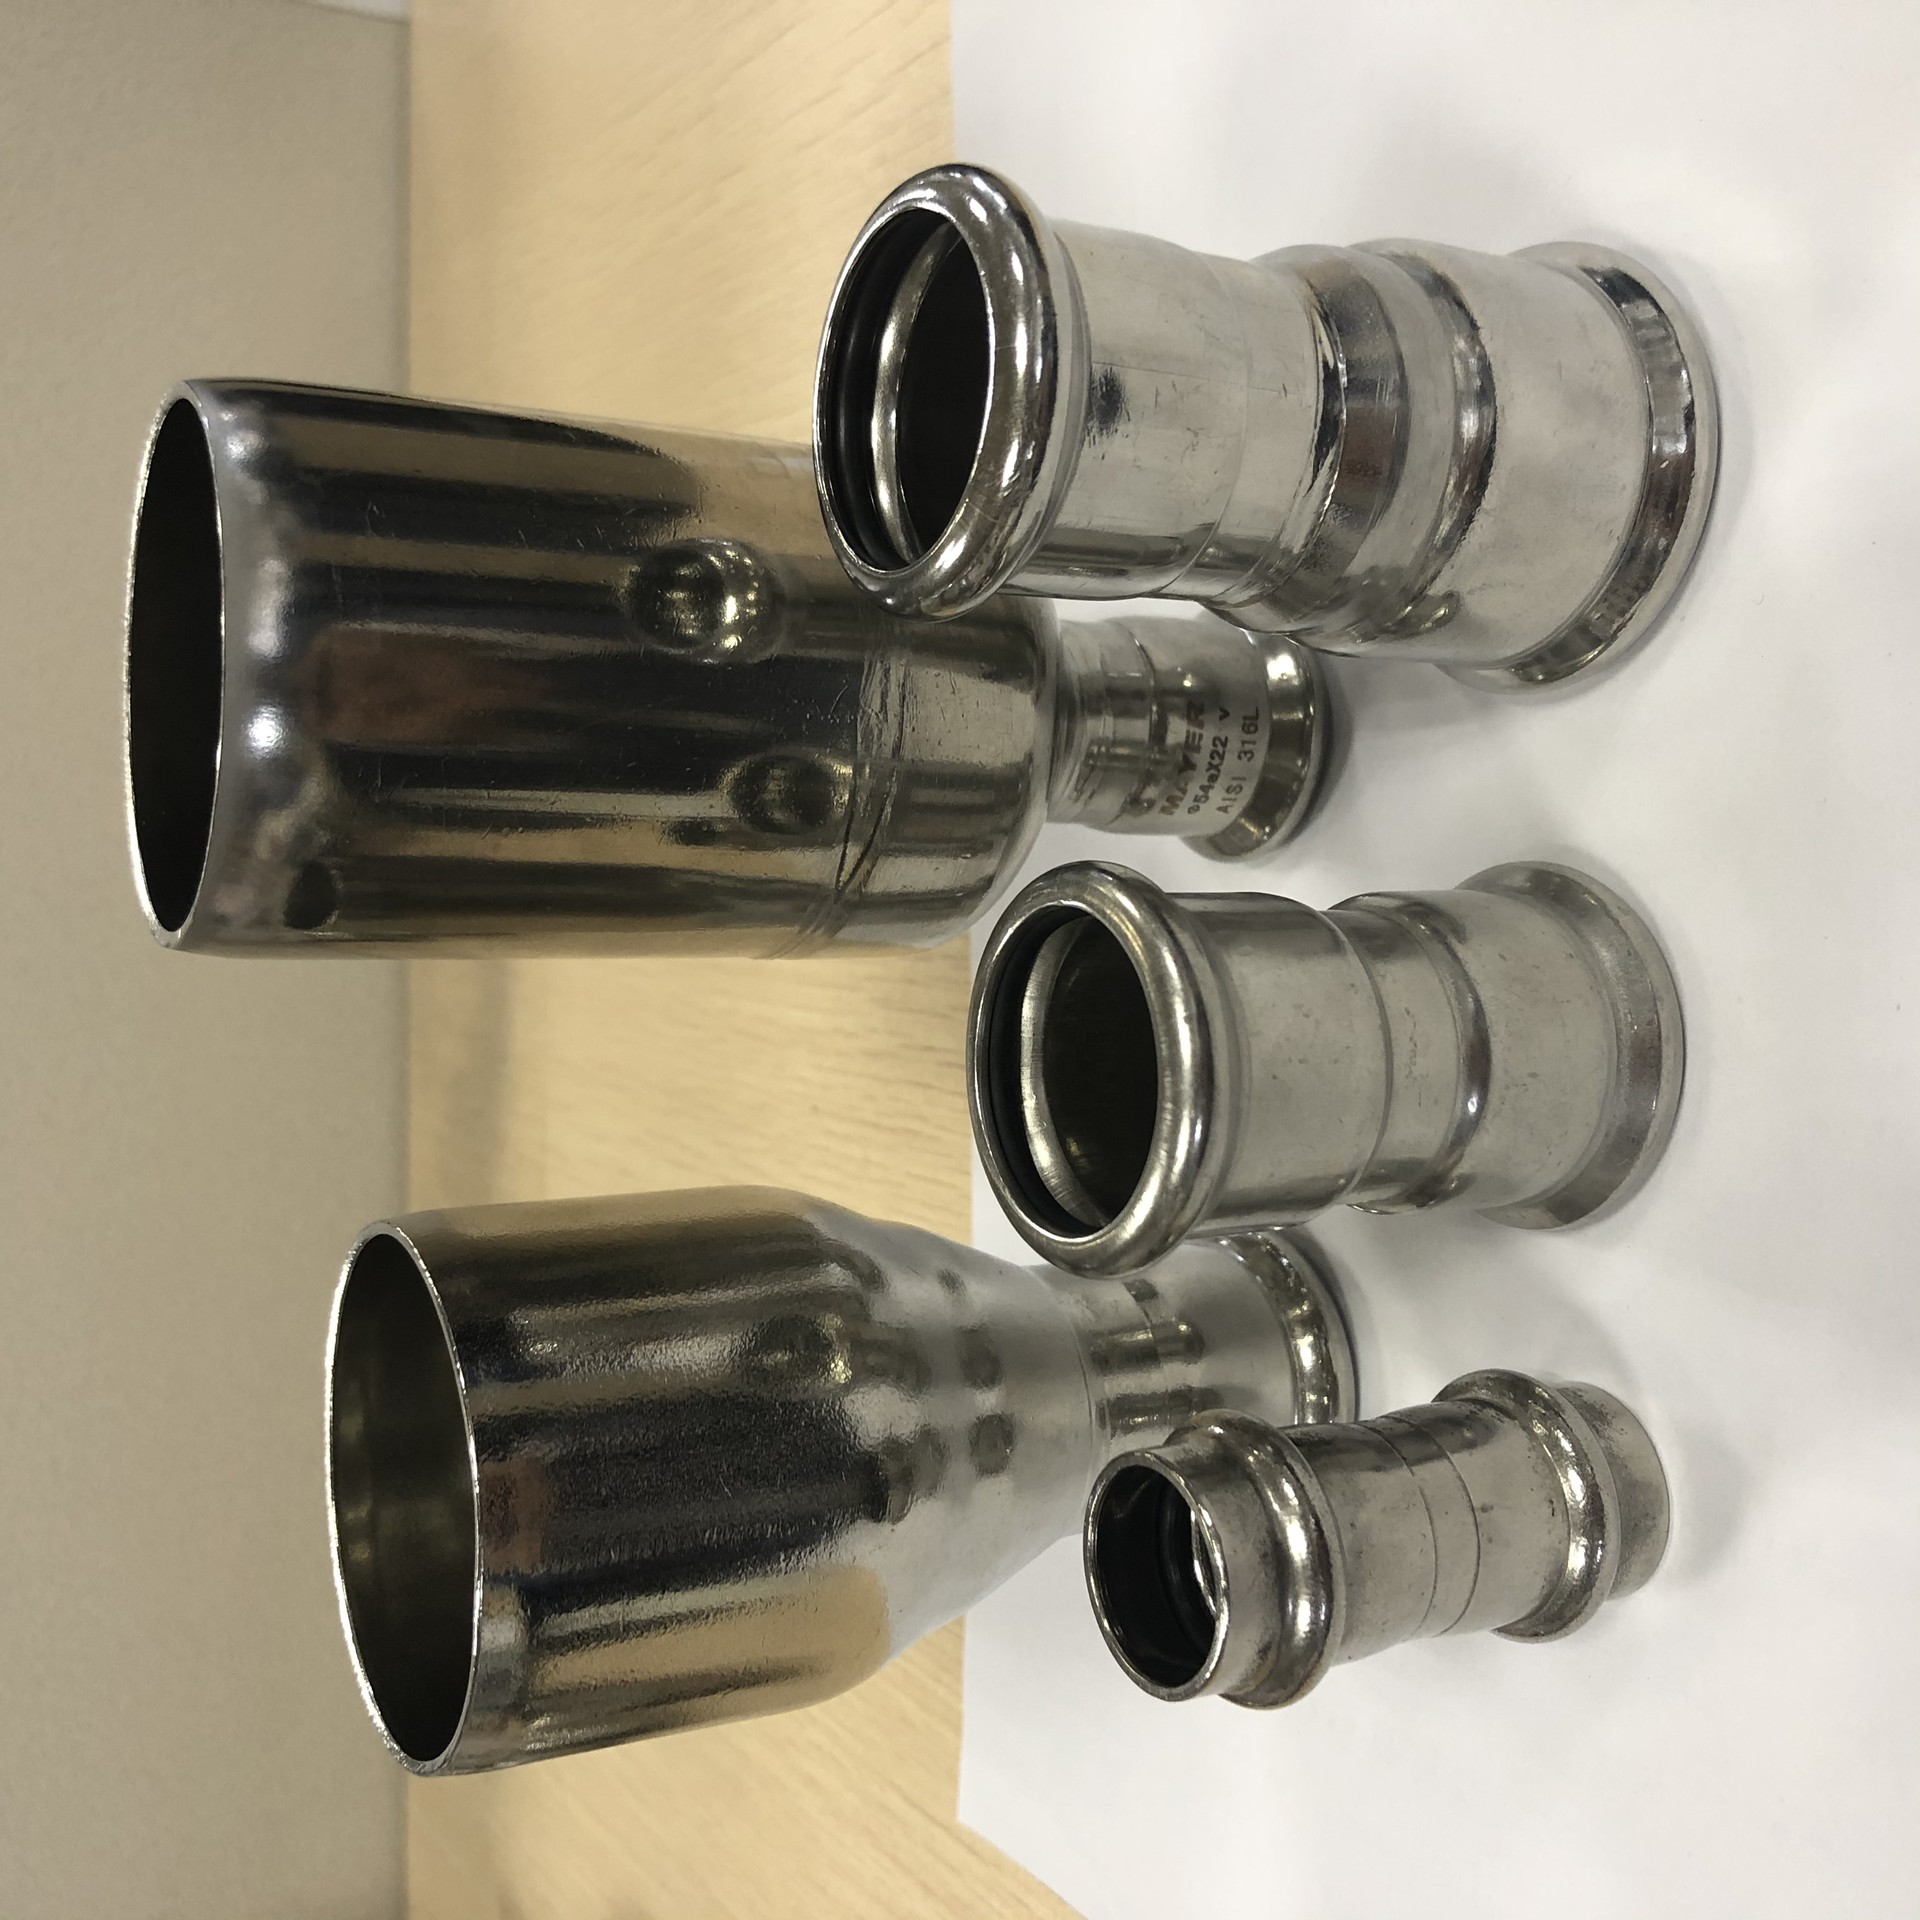 hot sales high quality stainless steel coupling pipeline fittinf for plumbing material 304/316l